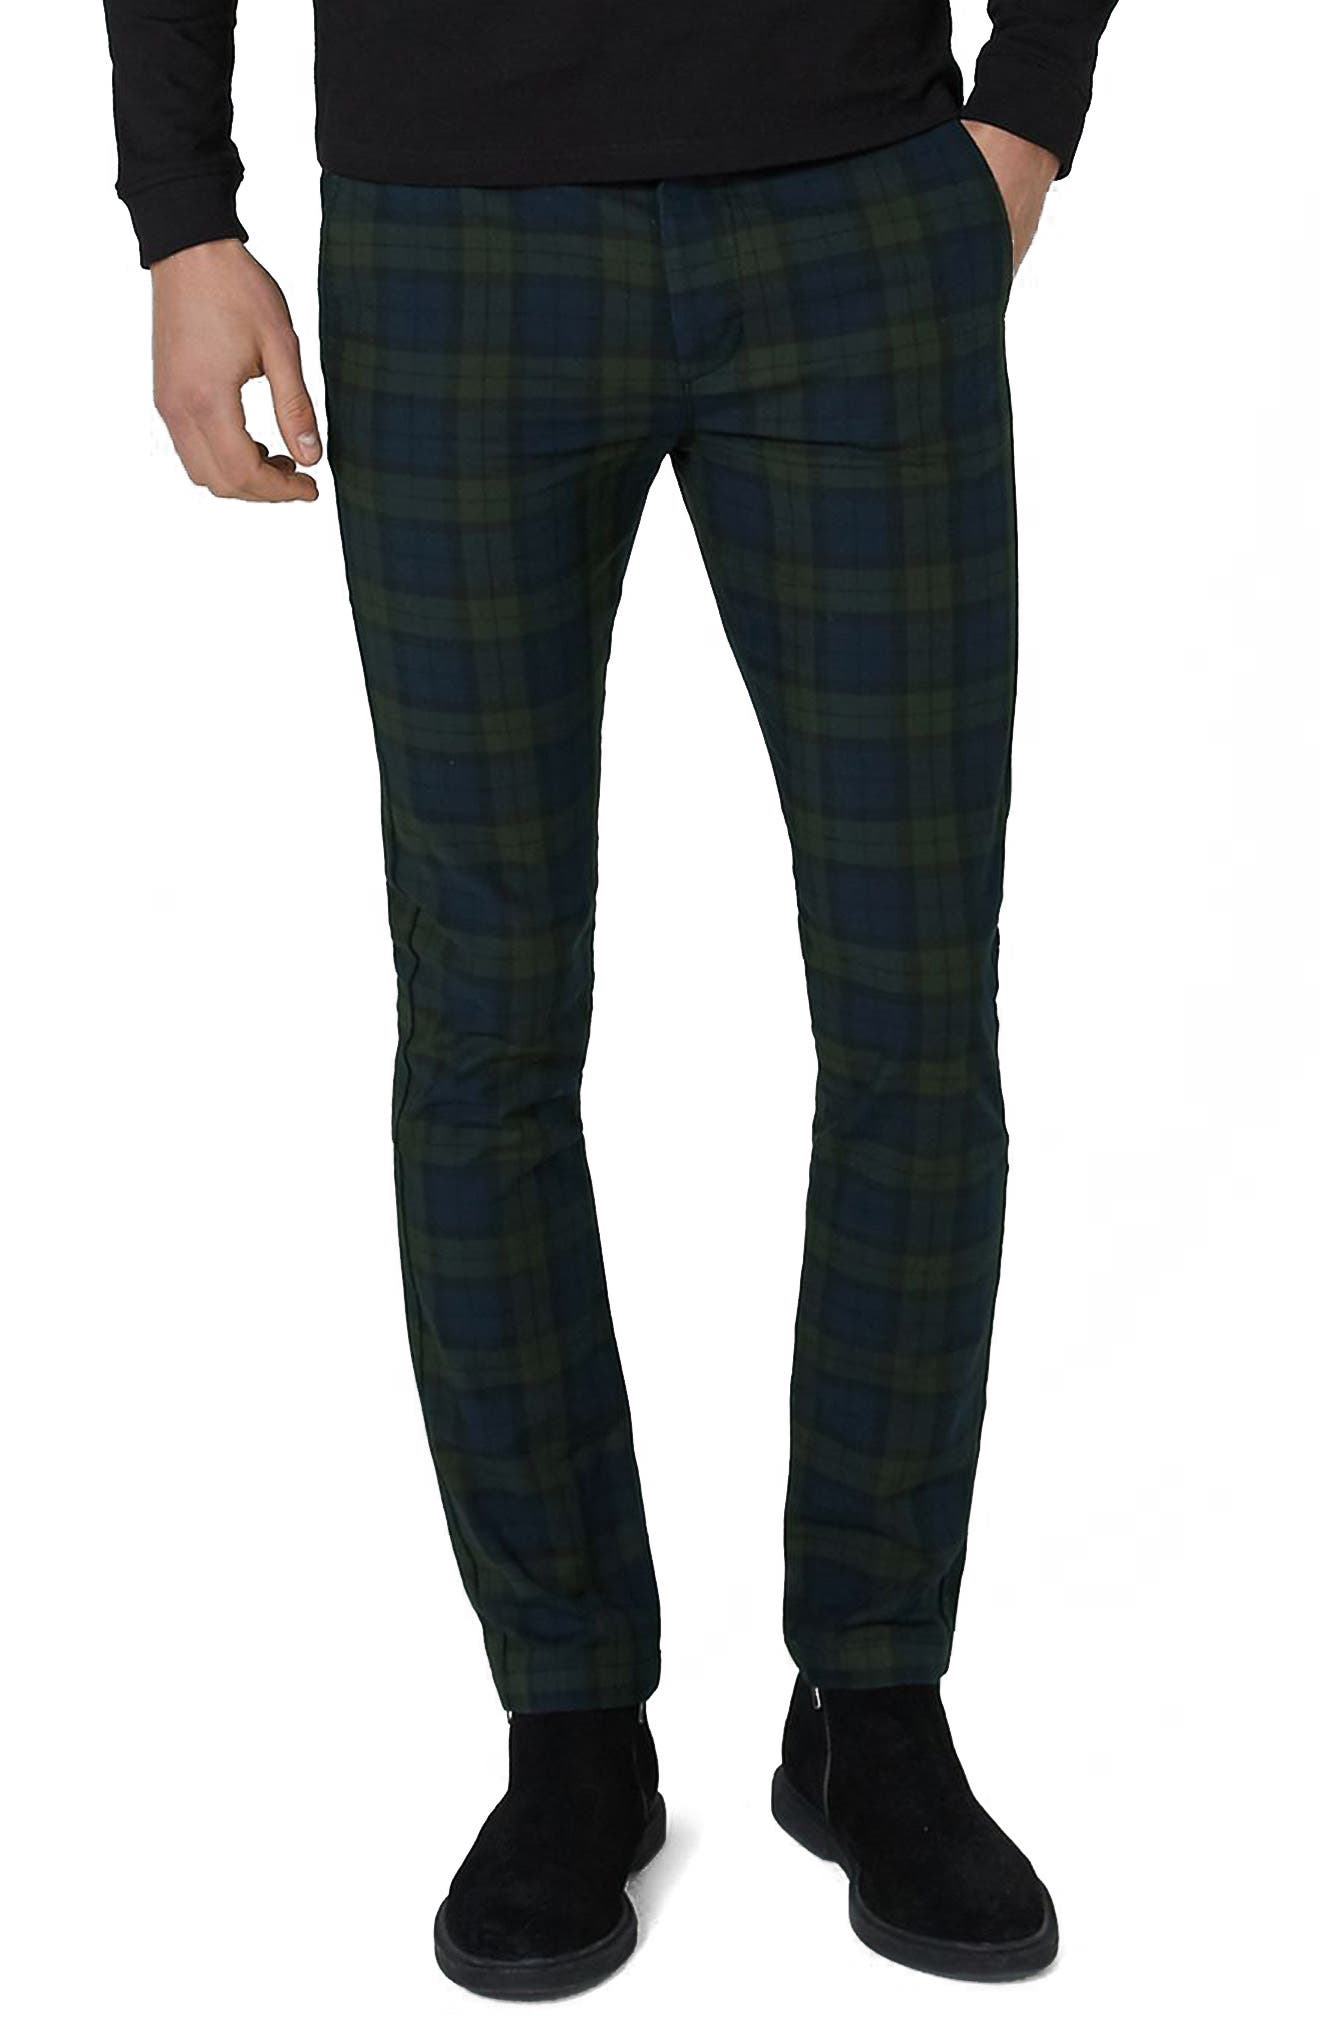 Black Watch Check Stretch Skinny Fit Trousers,                             Main thumbnail 1, color,                             340